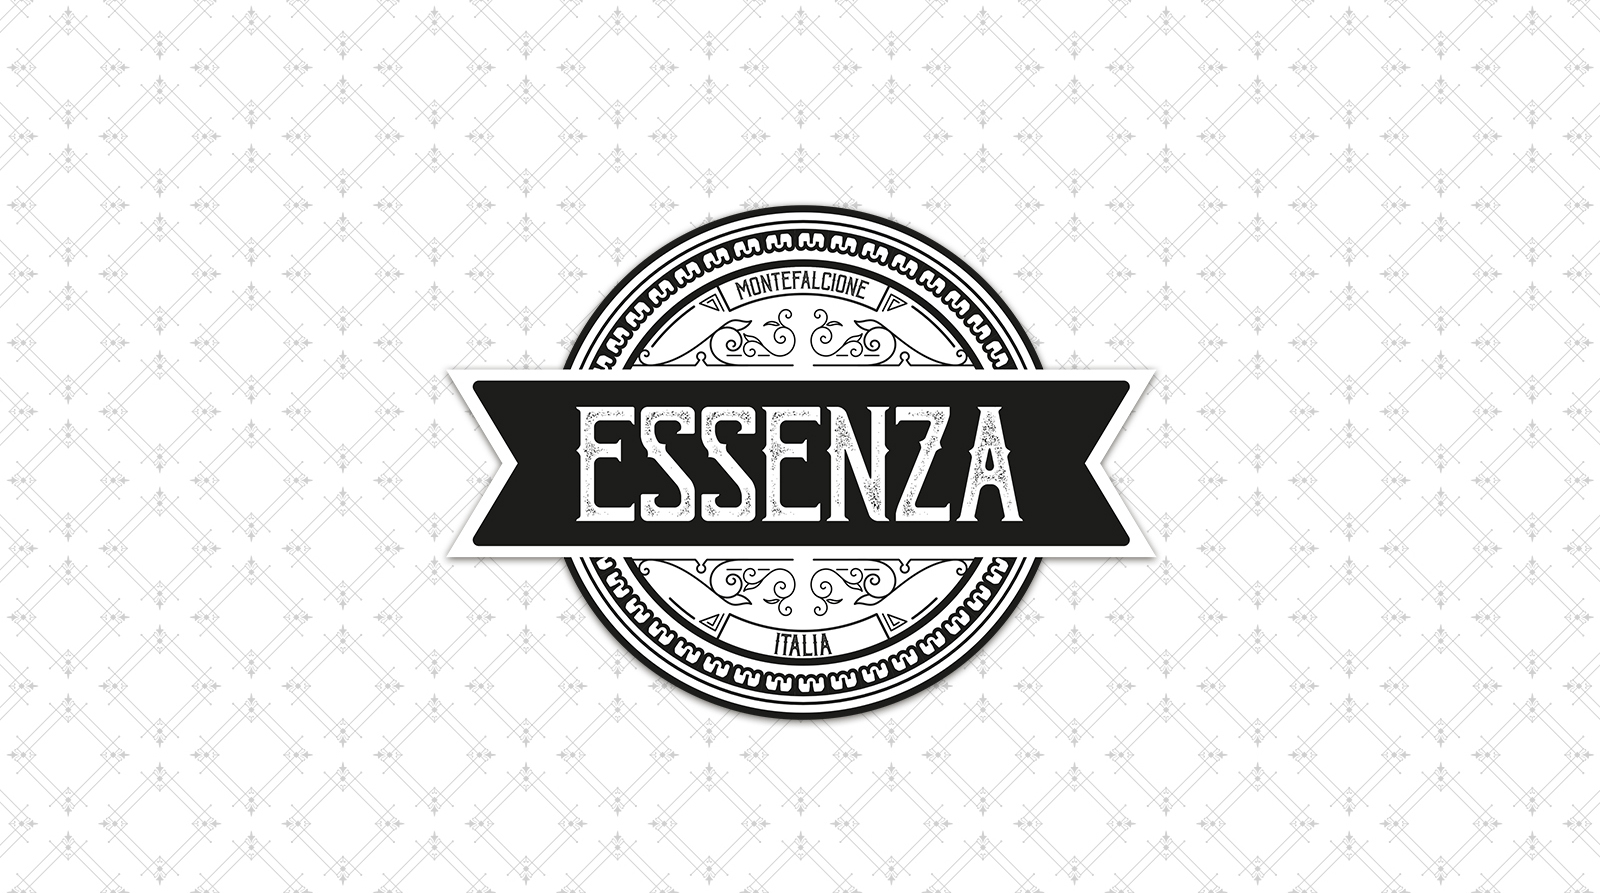 New Brand - Essenza - for Cantine Catena Italy / World Brand & Packaging Design Society